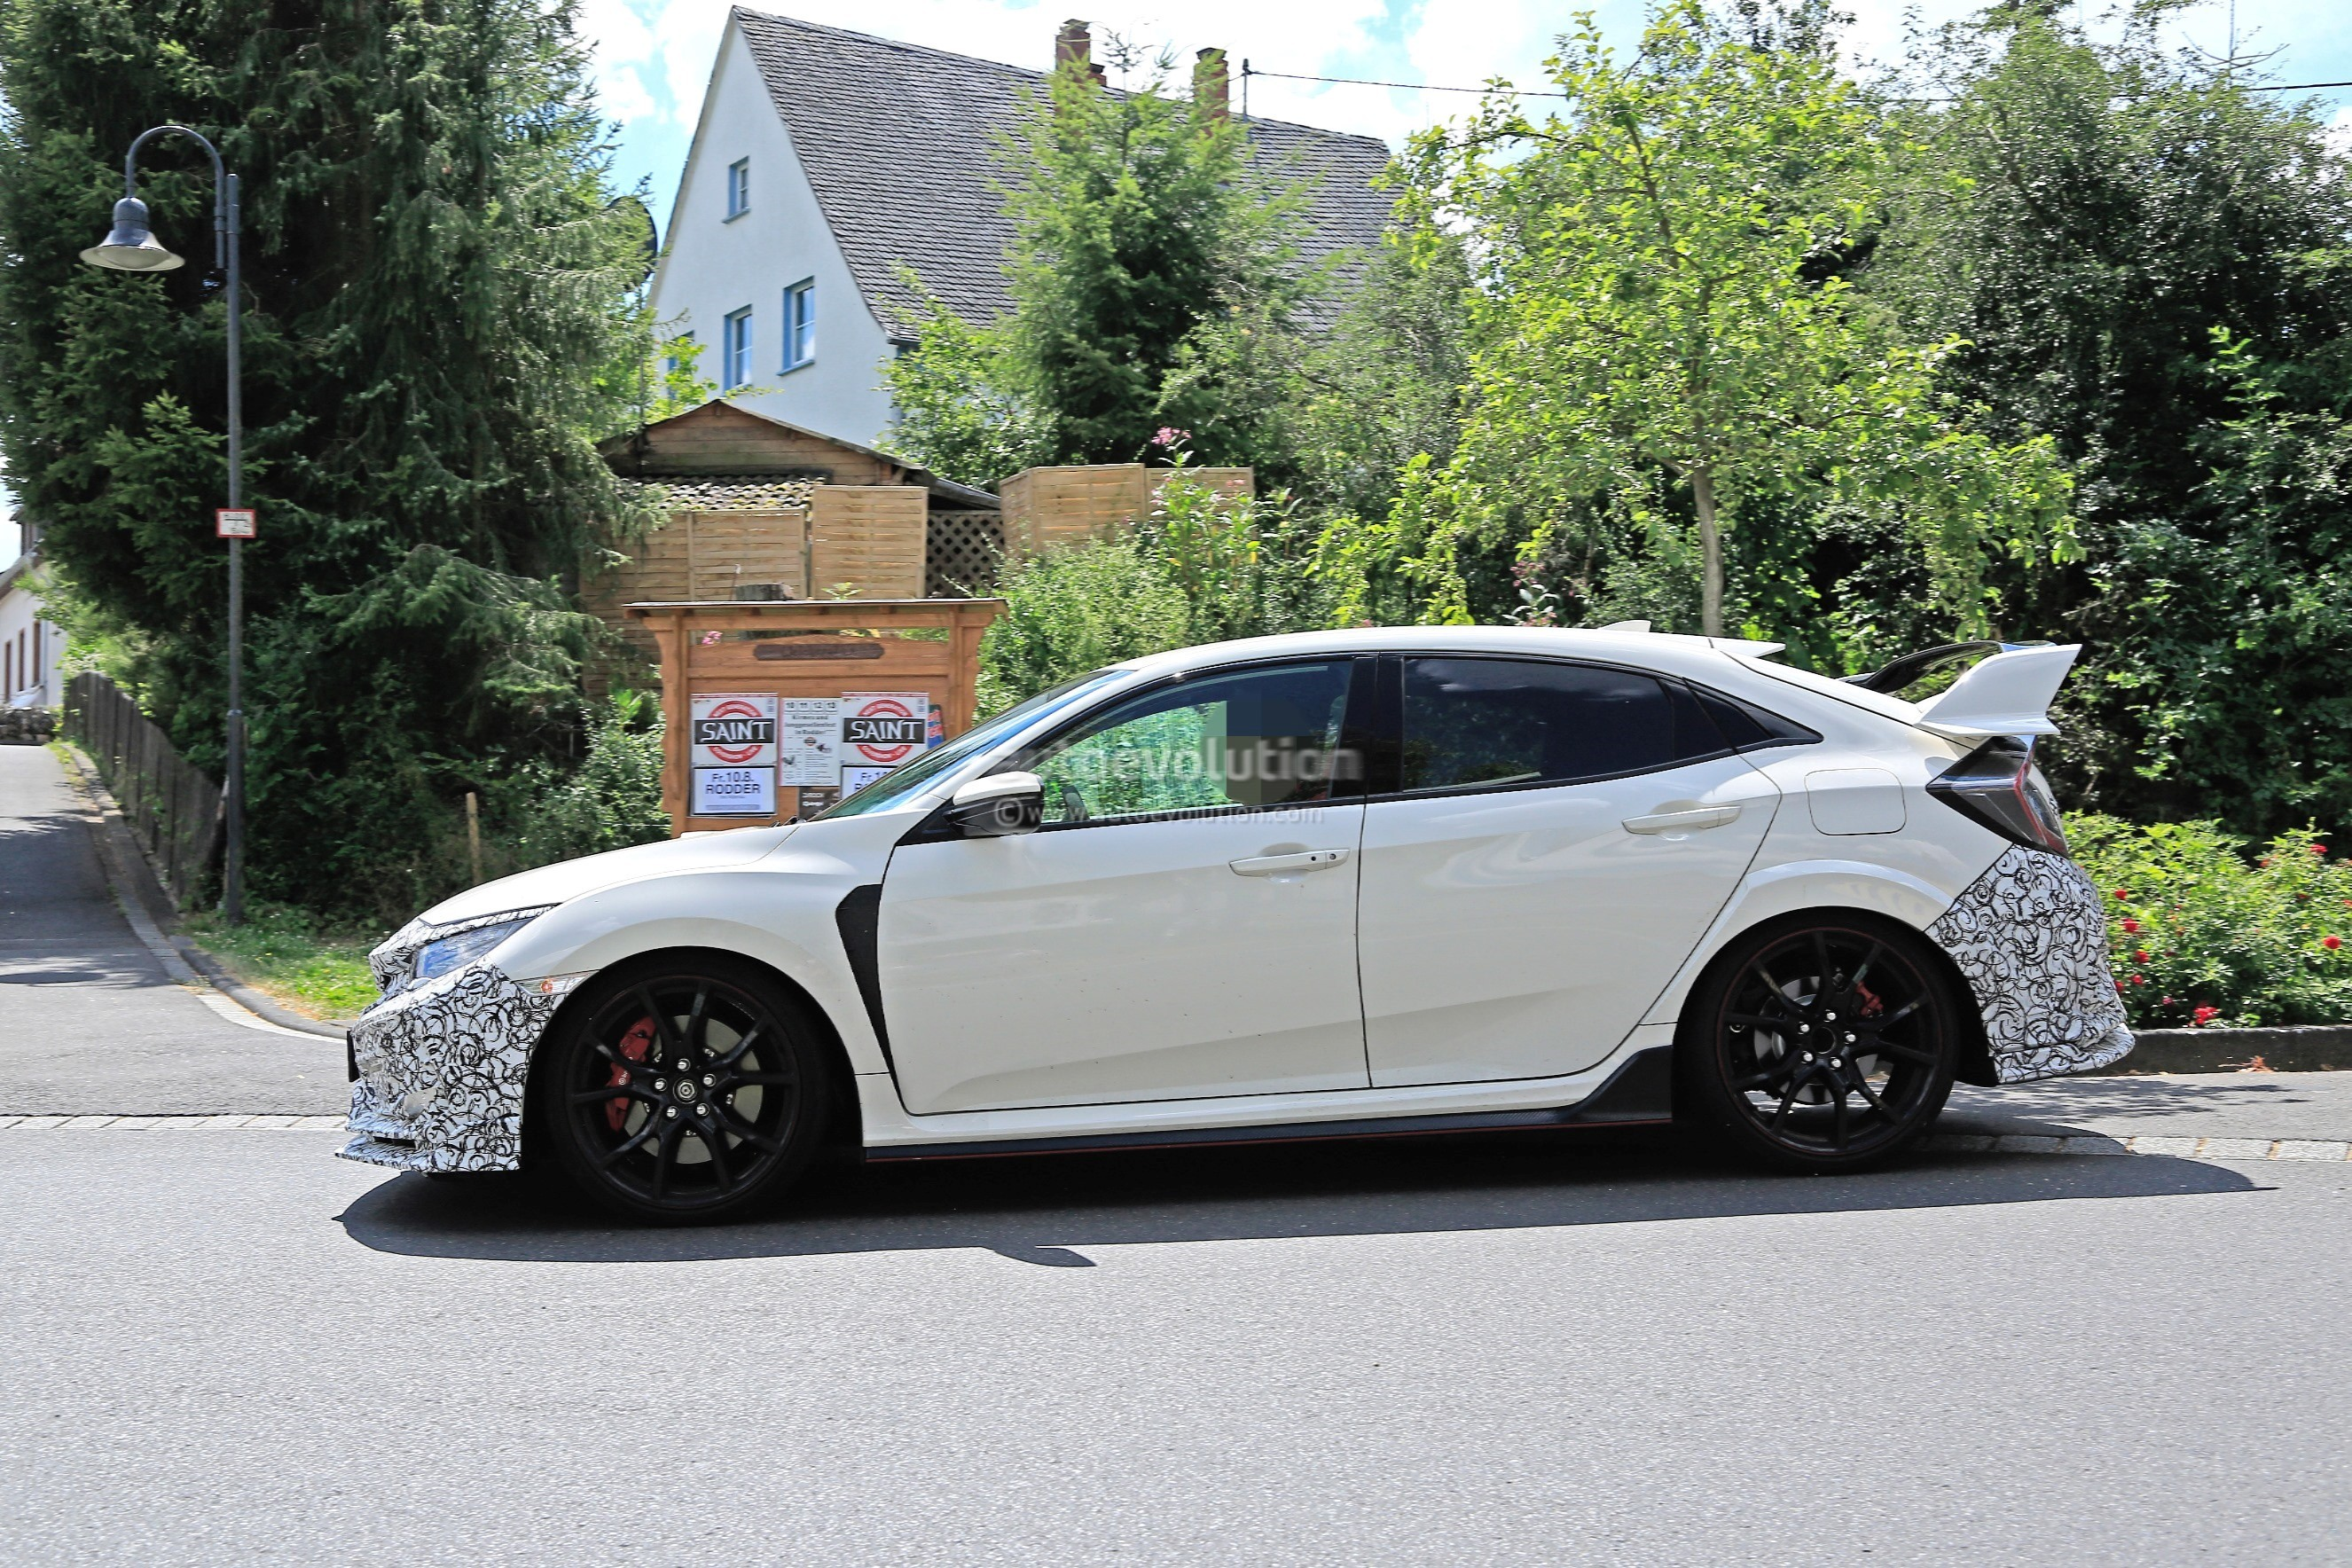 2019 Honda Civic Type R Spied For the First Time - autoevolution